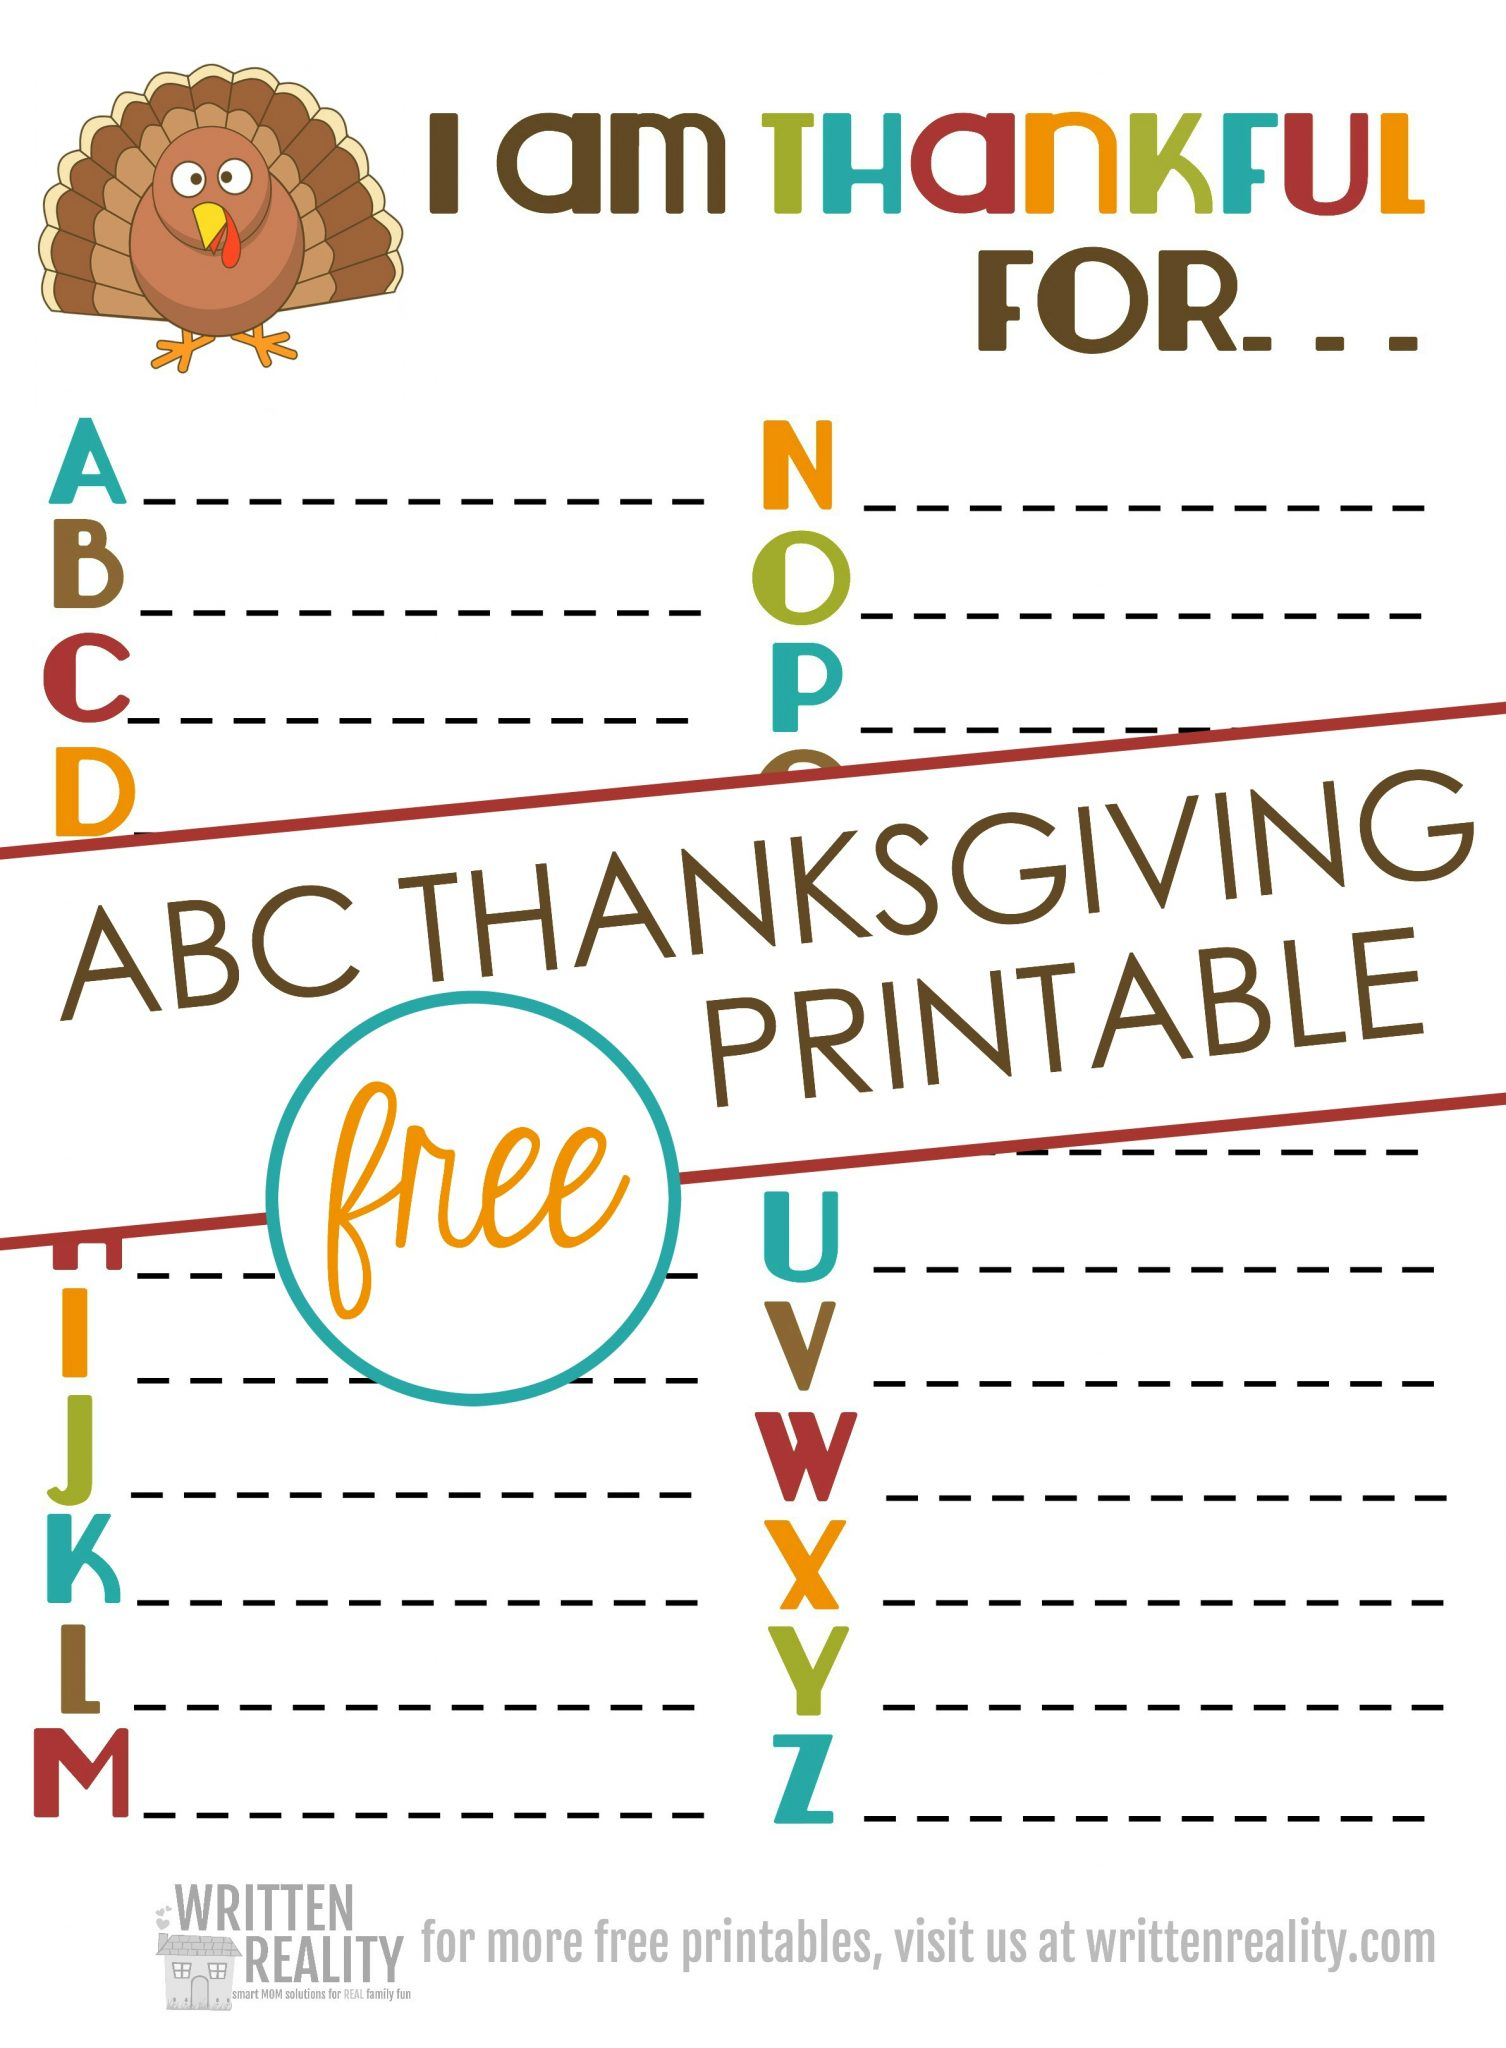 photograph regarding Thankful Printable named Grateful ABCs Printable is great for Thanksgiving